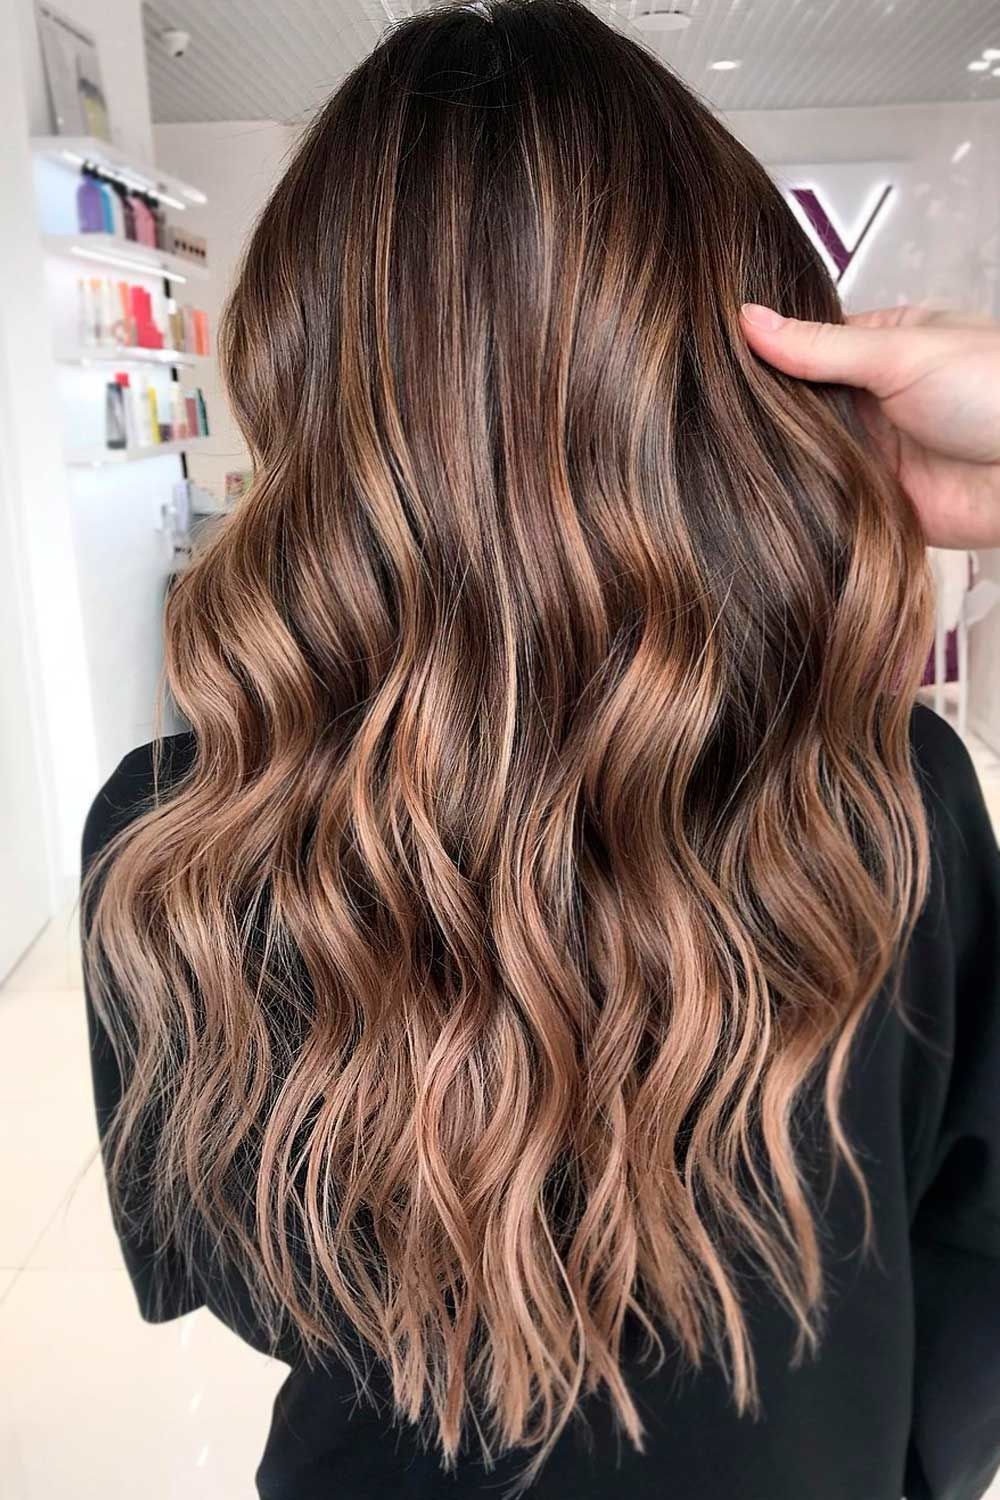 Amazing Highlights, chocolate brown hair with blonde highlights, highlight for dark hair, short dark hair with highlights